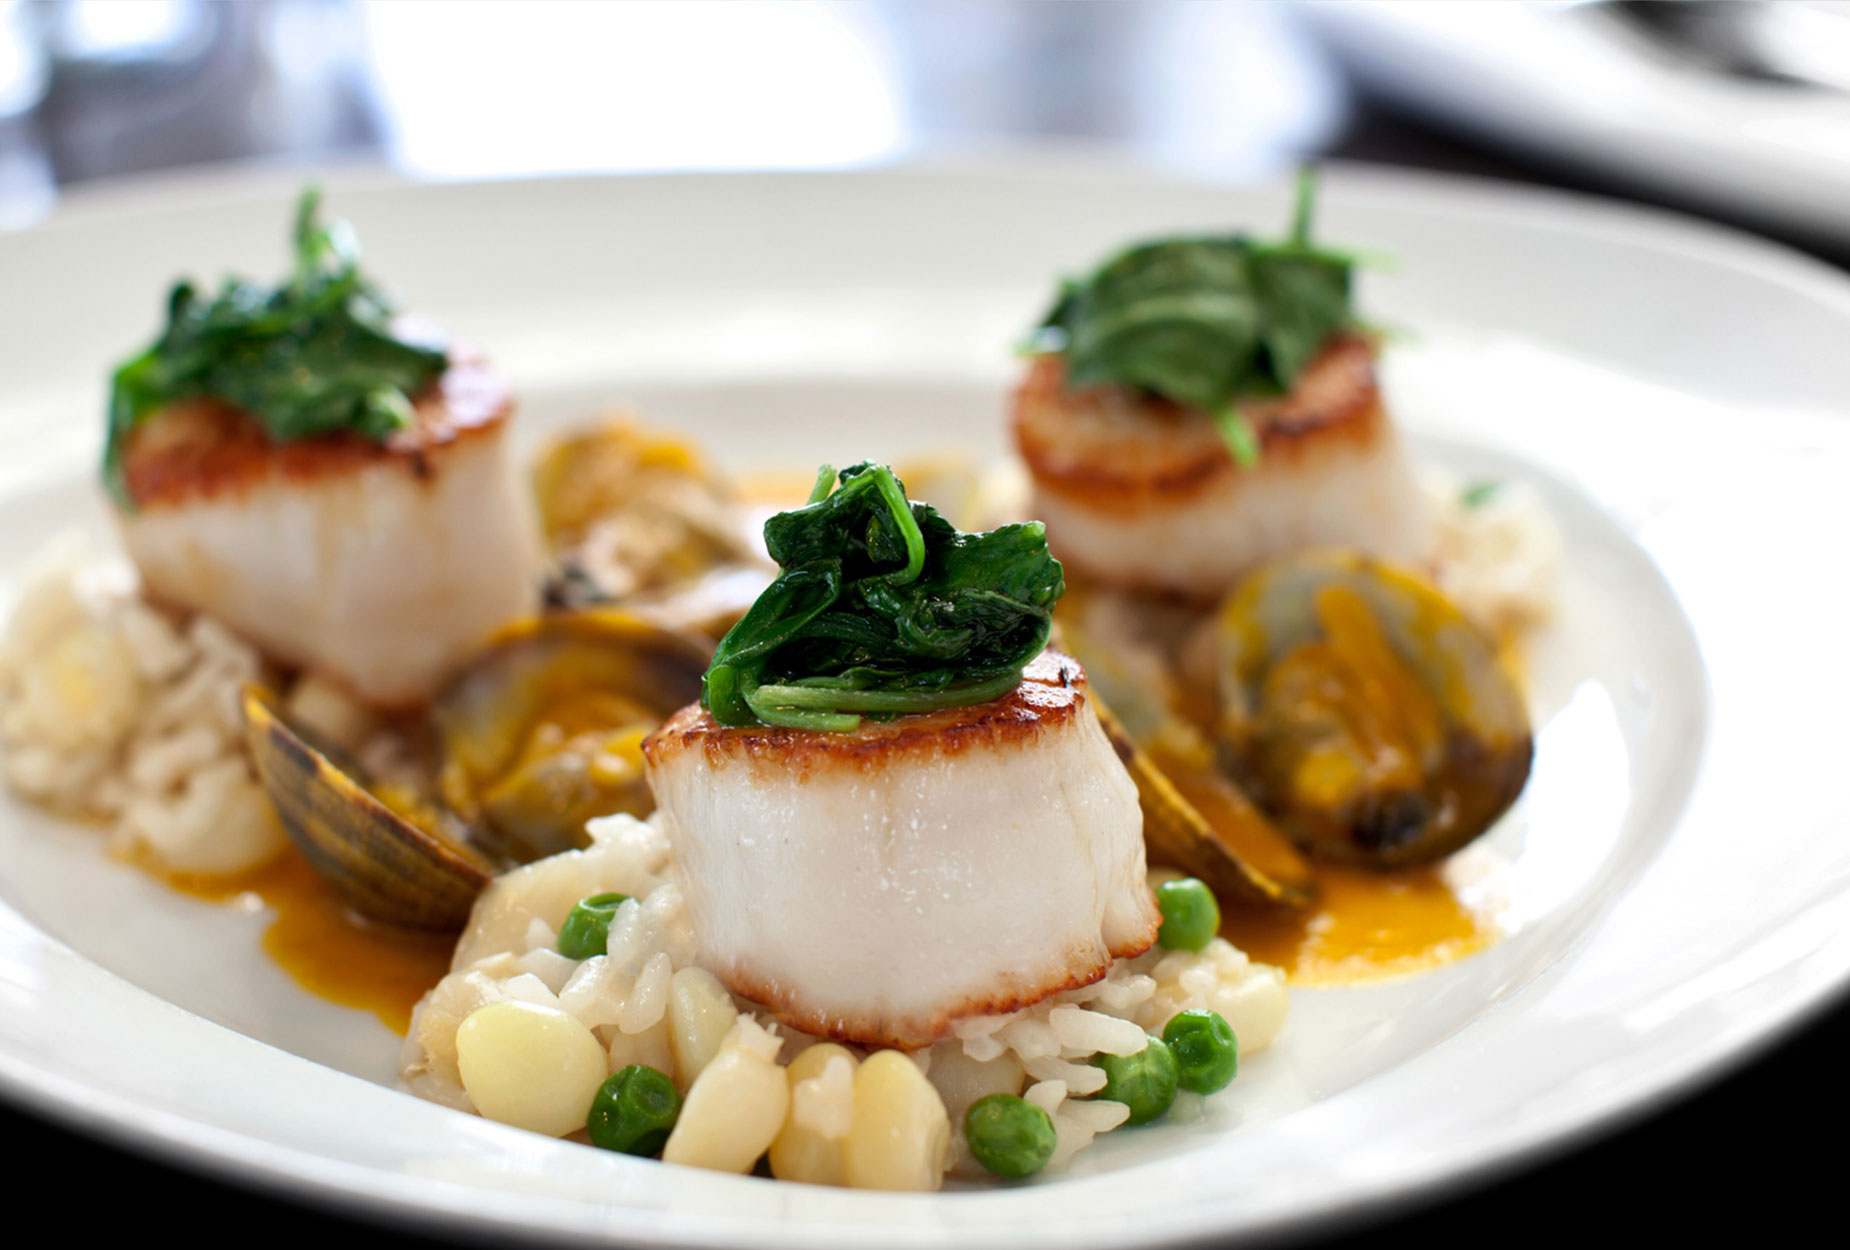 Scallops and Clams | Food Photographer, Marshall Gordon